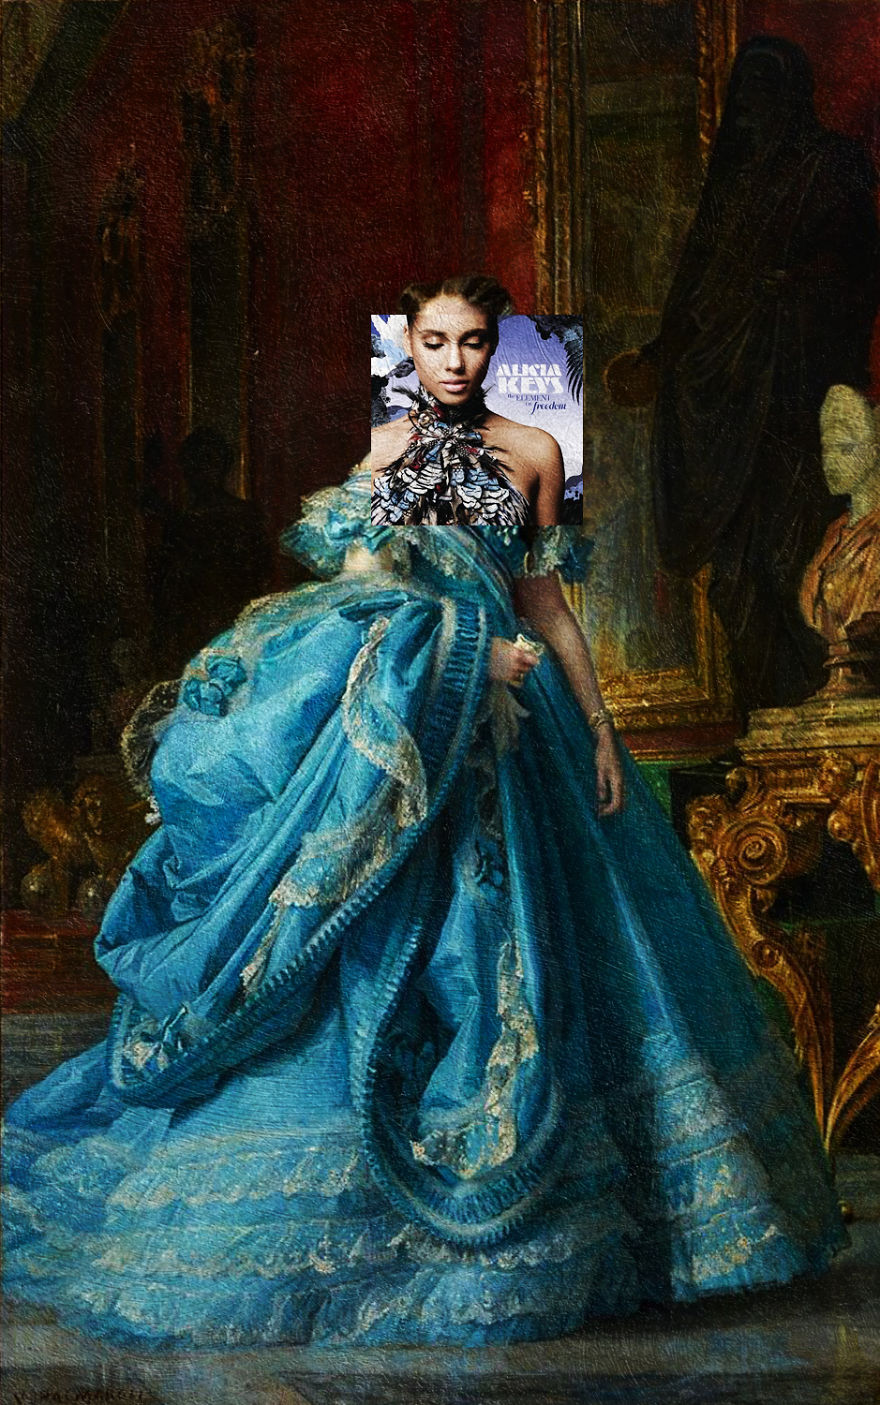 eisen_bernardo-album-covers-classical-paintings-mashup_08